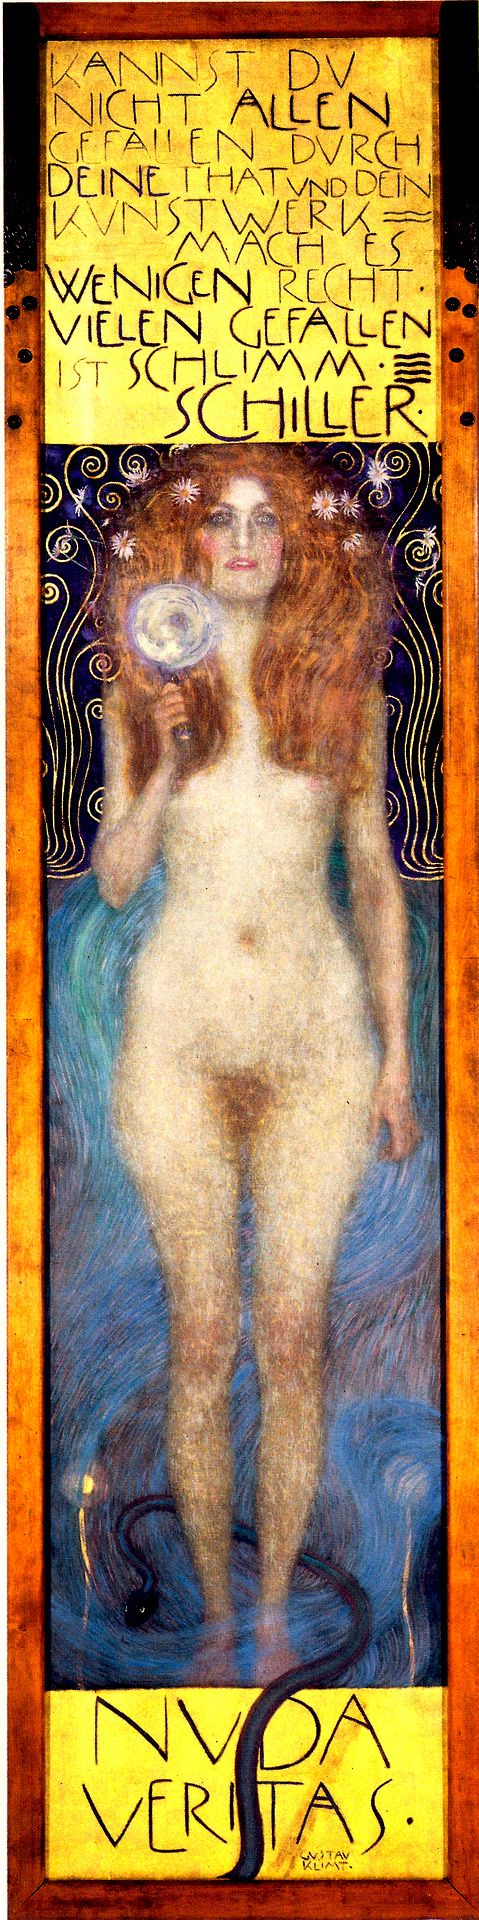 "Gustav Klimt (1862-1918) : "" Nuda Veritas = the Naked Truth "" , 1899 ,oil on canvas , 252 x56,2 cm , Austrian Theater Museum , Vienna . The model is Mizzi Zimmermann who gave Birth two sons to Klimt ."